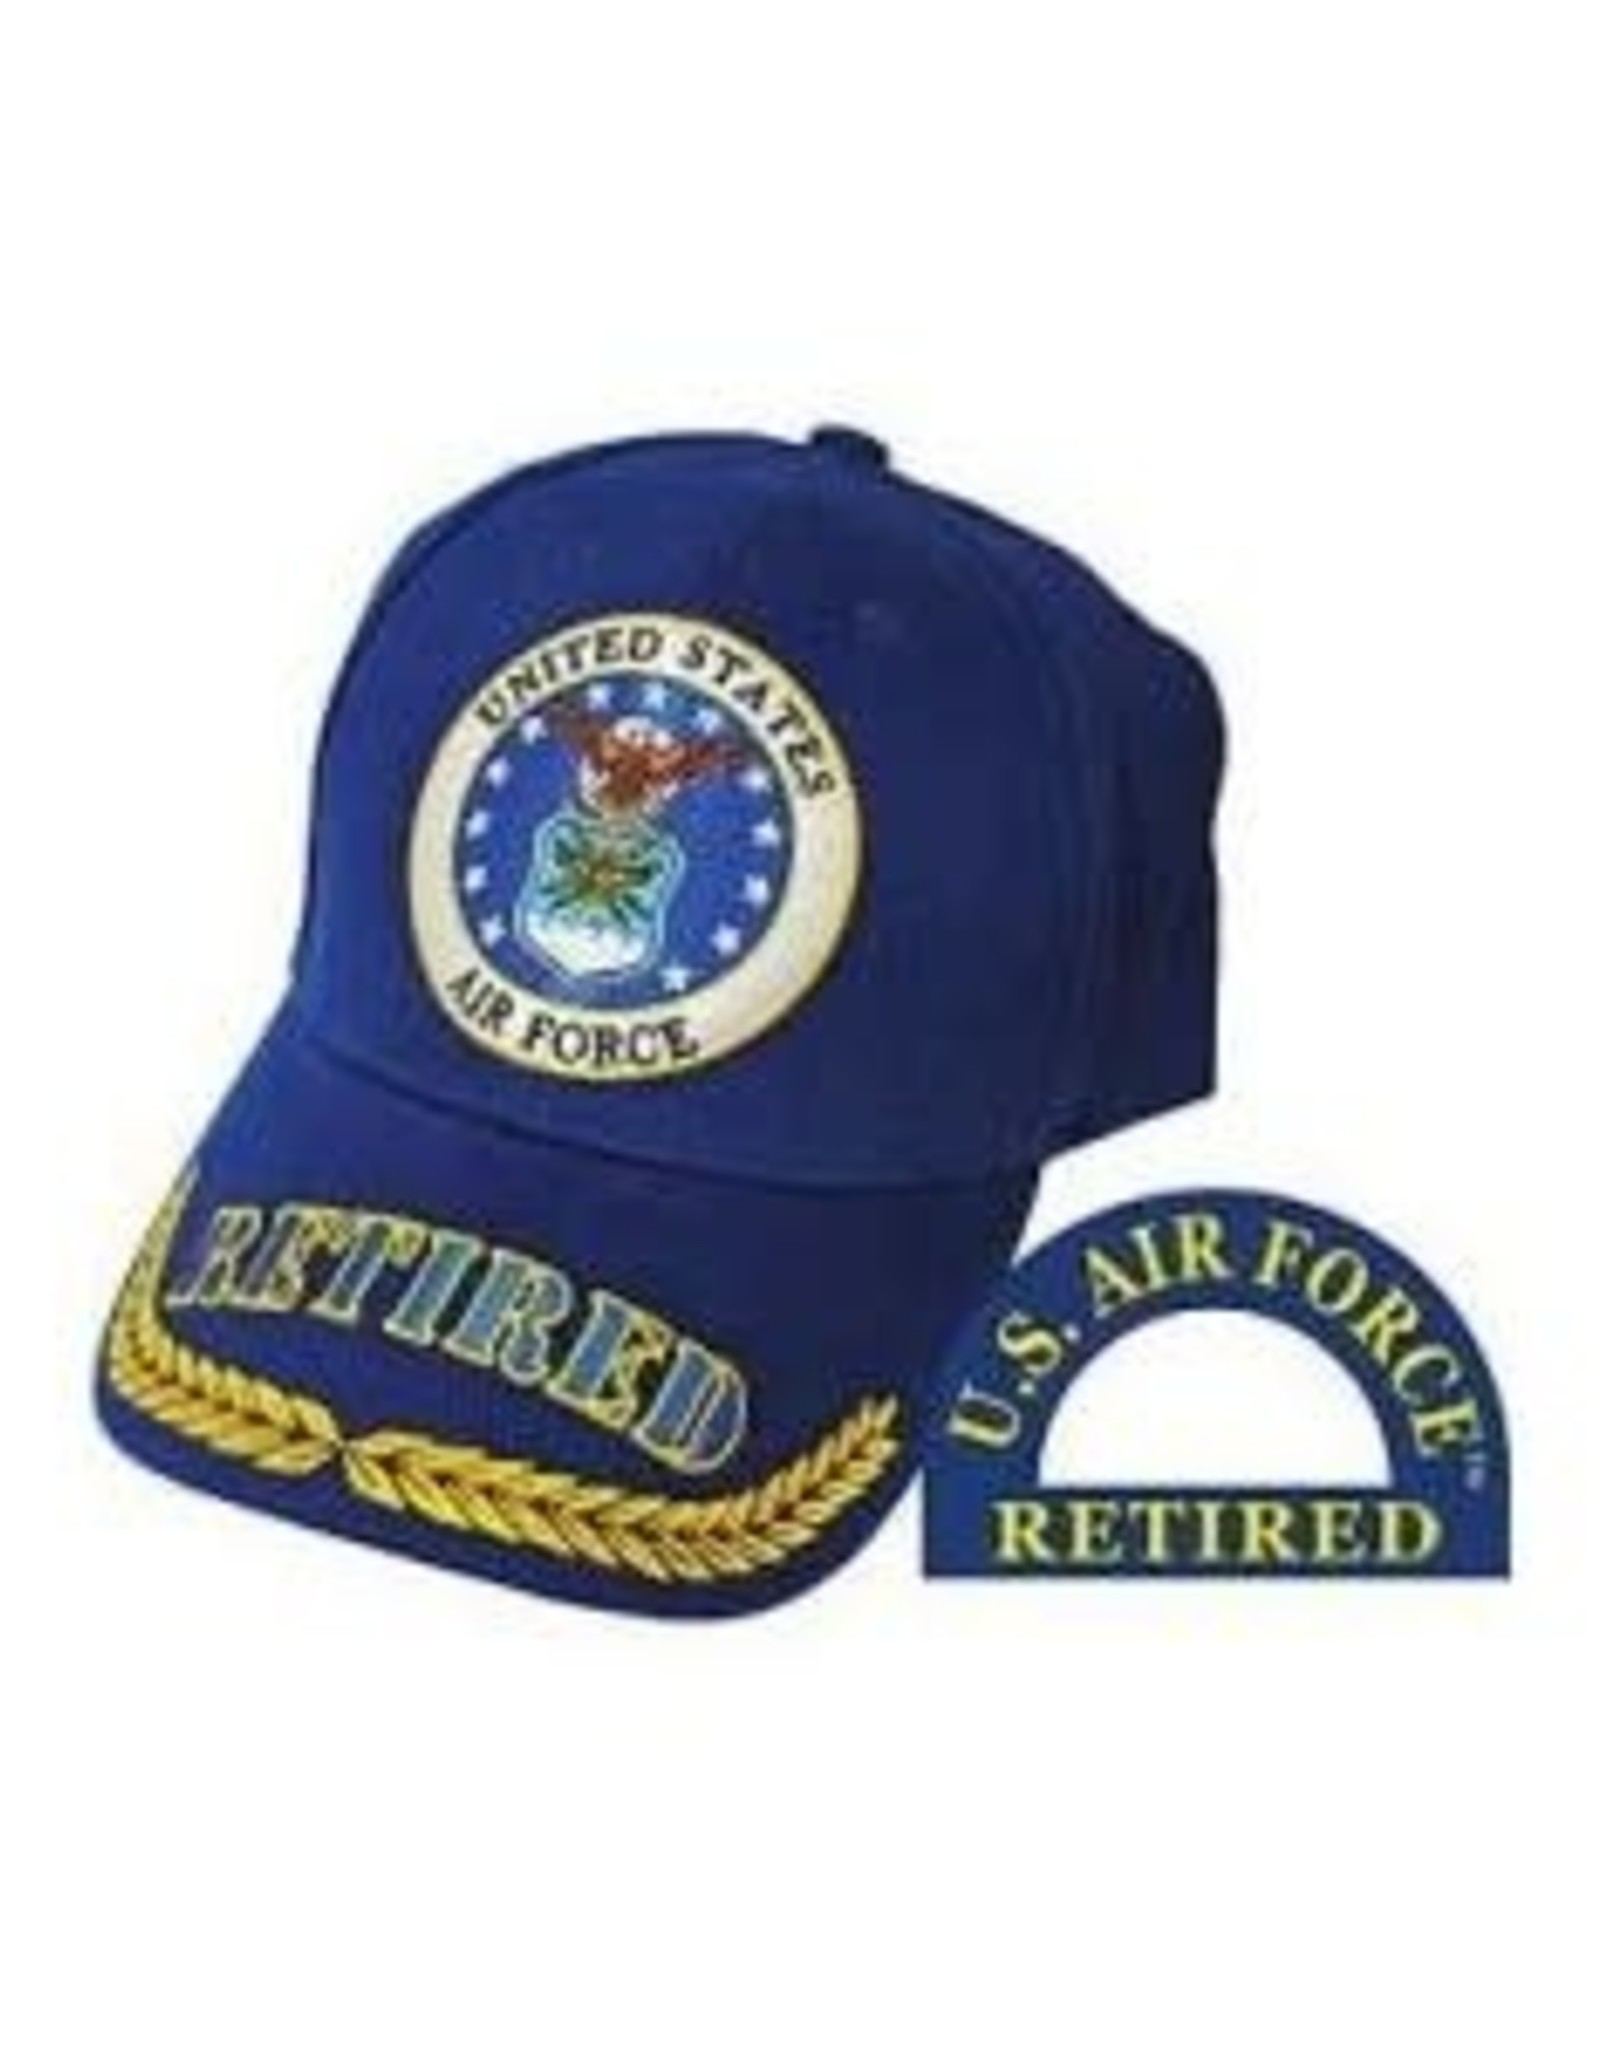 MidMil Air Force Retired Hat with Seal and Wheat on Bill Royal Blue